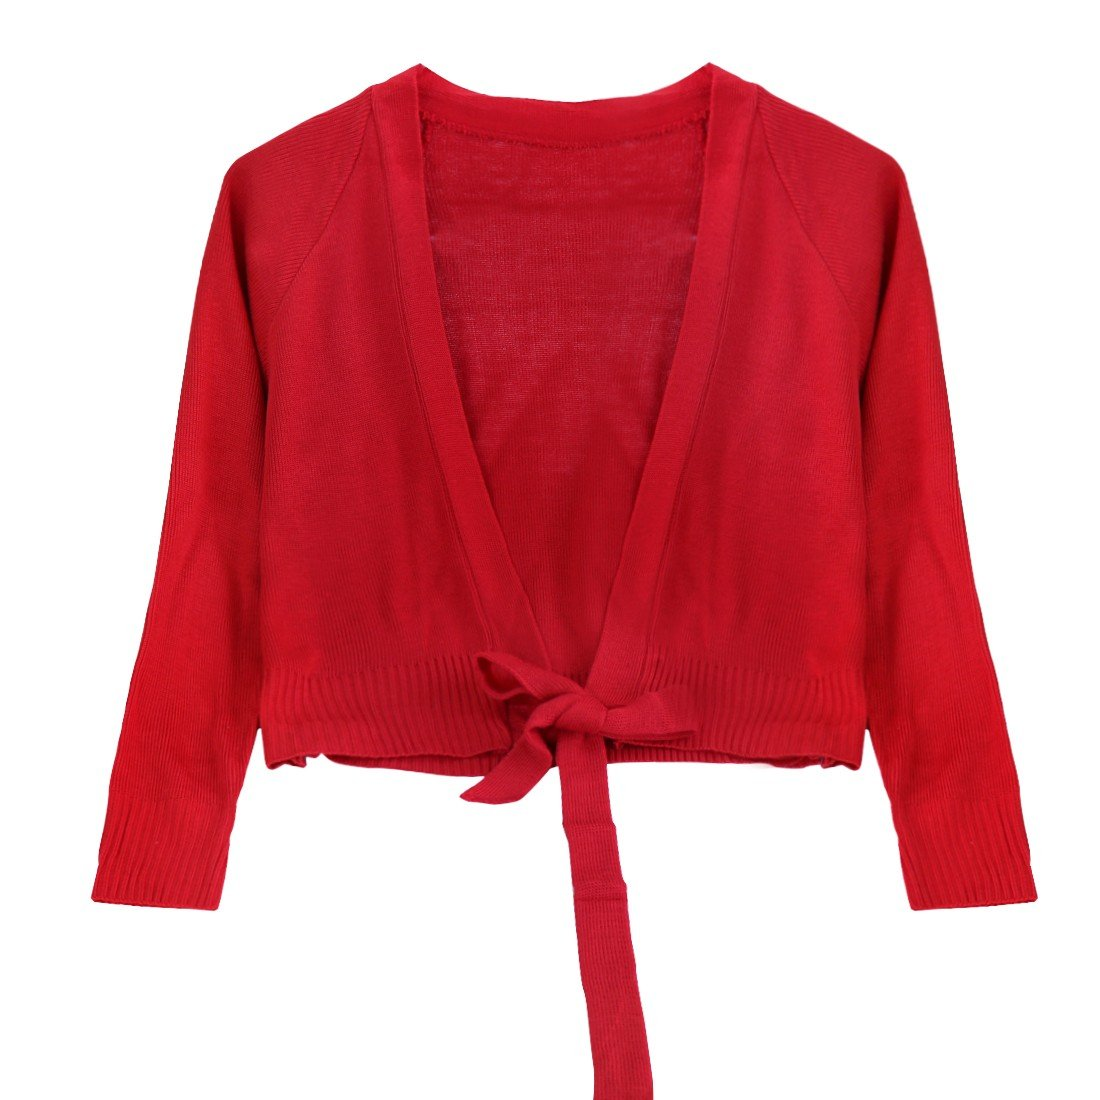 iEFiEL Kids Girls Long Sleeves Front Tie Knot Shrug Stretchy Cardigan Top Red 7-8